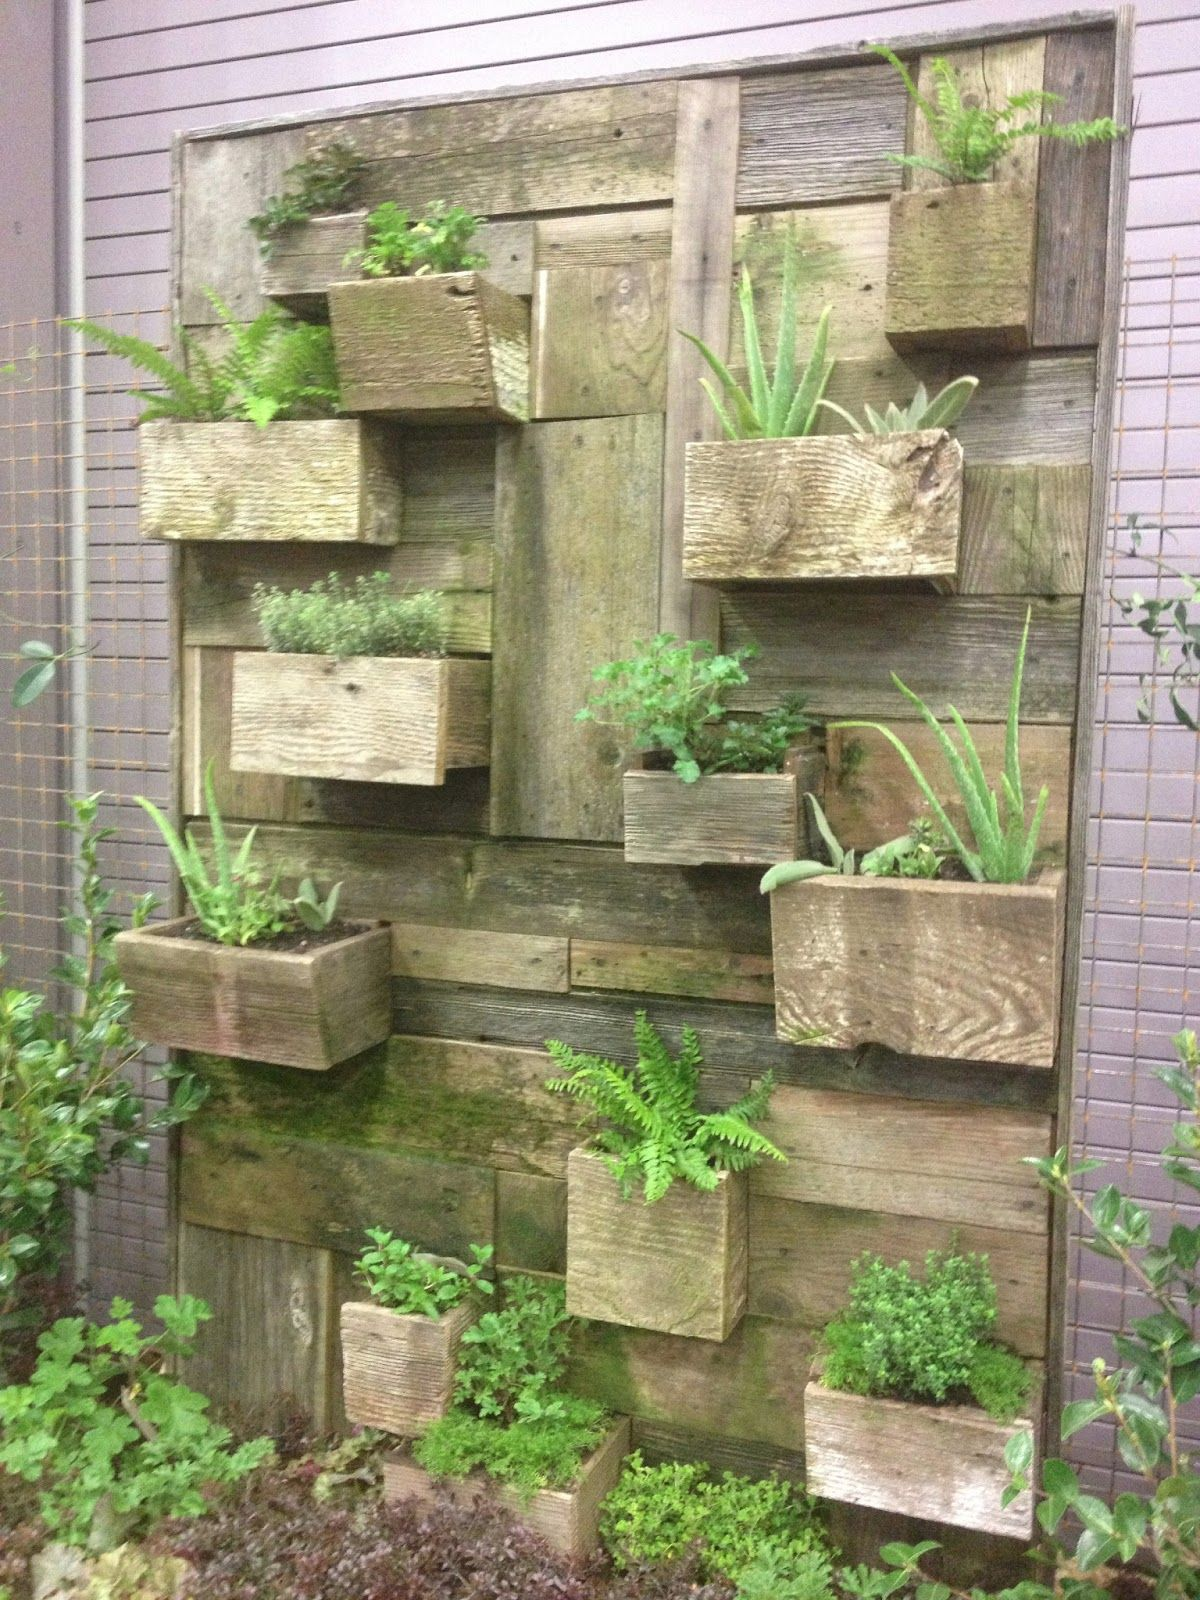 Garden And Patio, Vertical Vegetable Garden House Design With DIY Wall  Mounted Wood Planter Box Ideas ~ Vegetable Garden Design